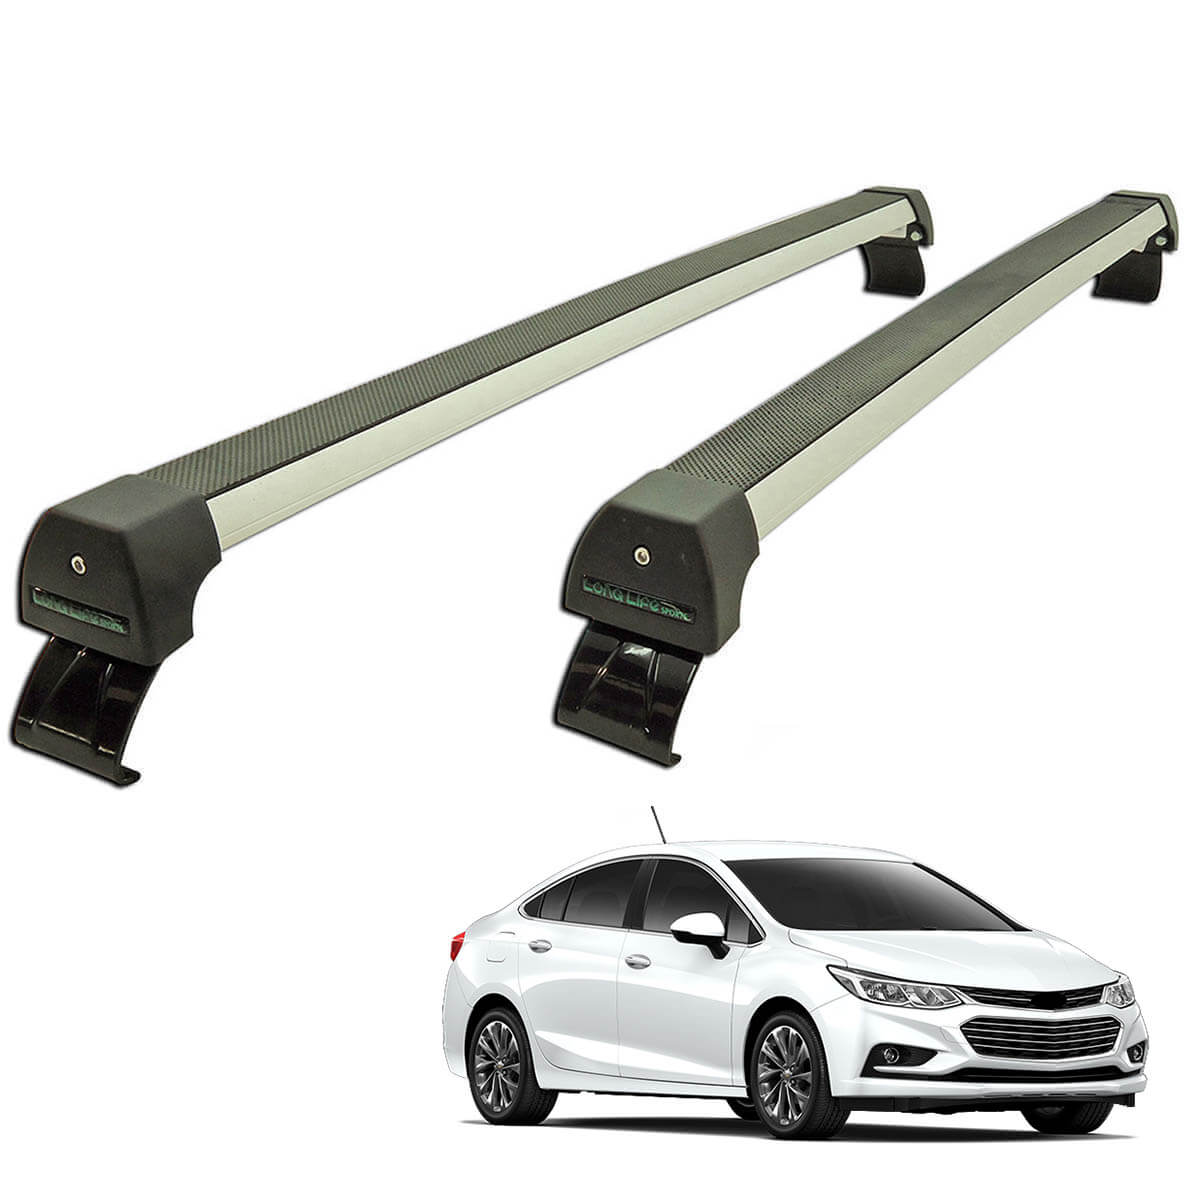 Rack de teto Novo Cruze sedan 2017 2018 Long Life Sports anodizado